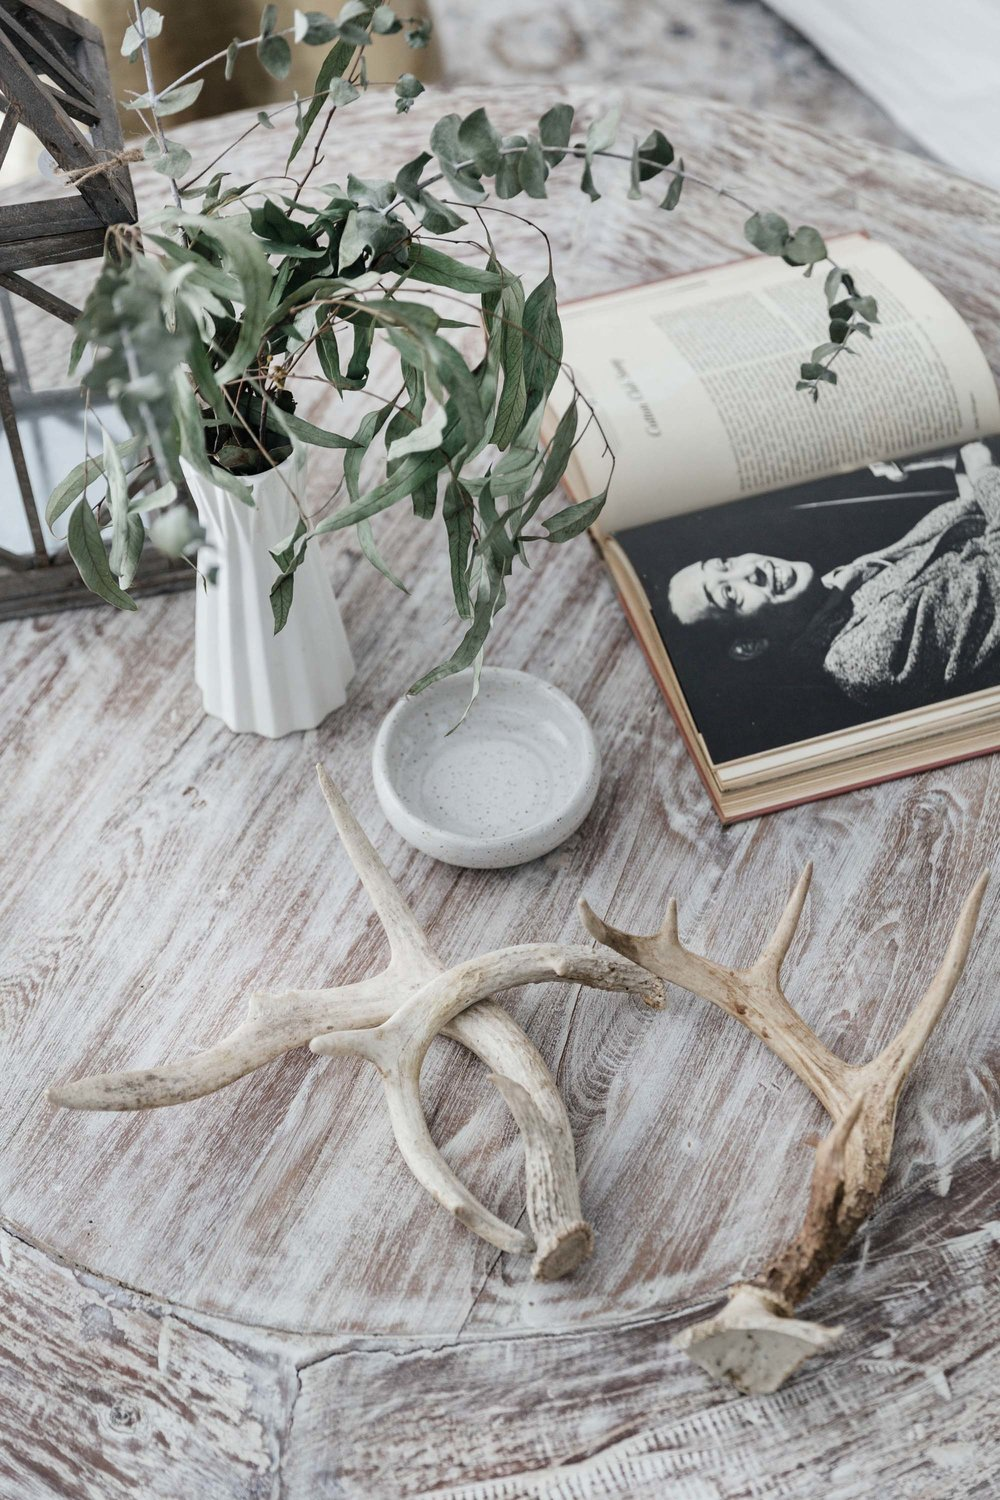 Distressed wooden coffee table with a vase of flowers and antlers